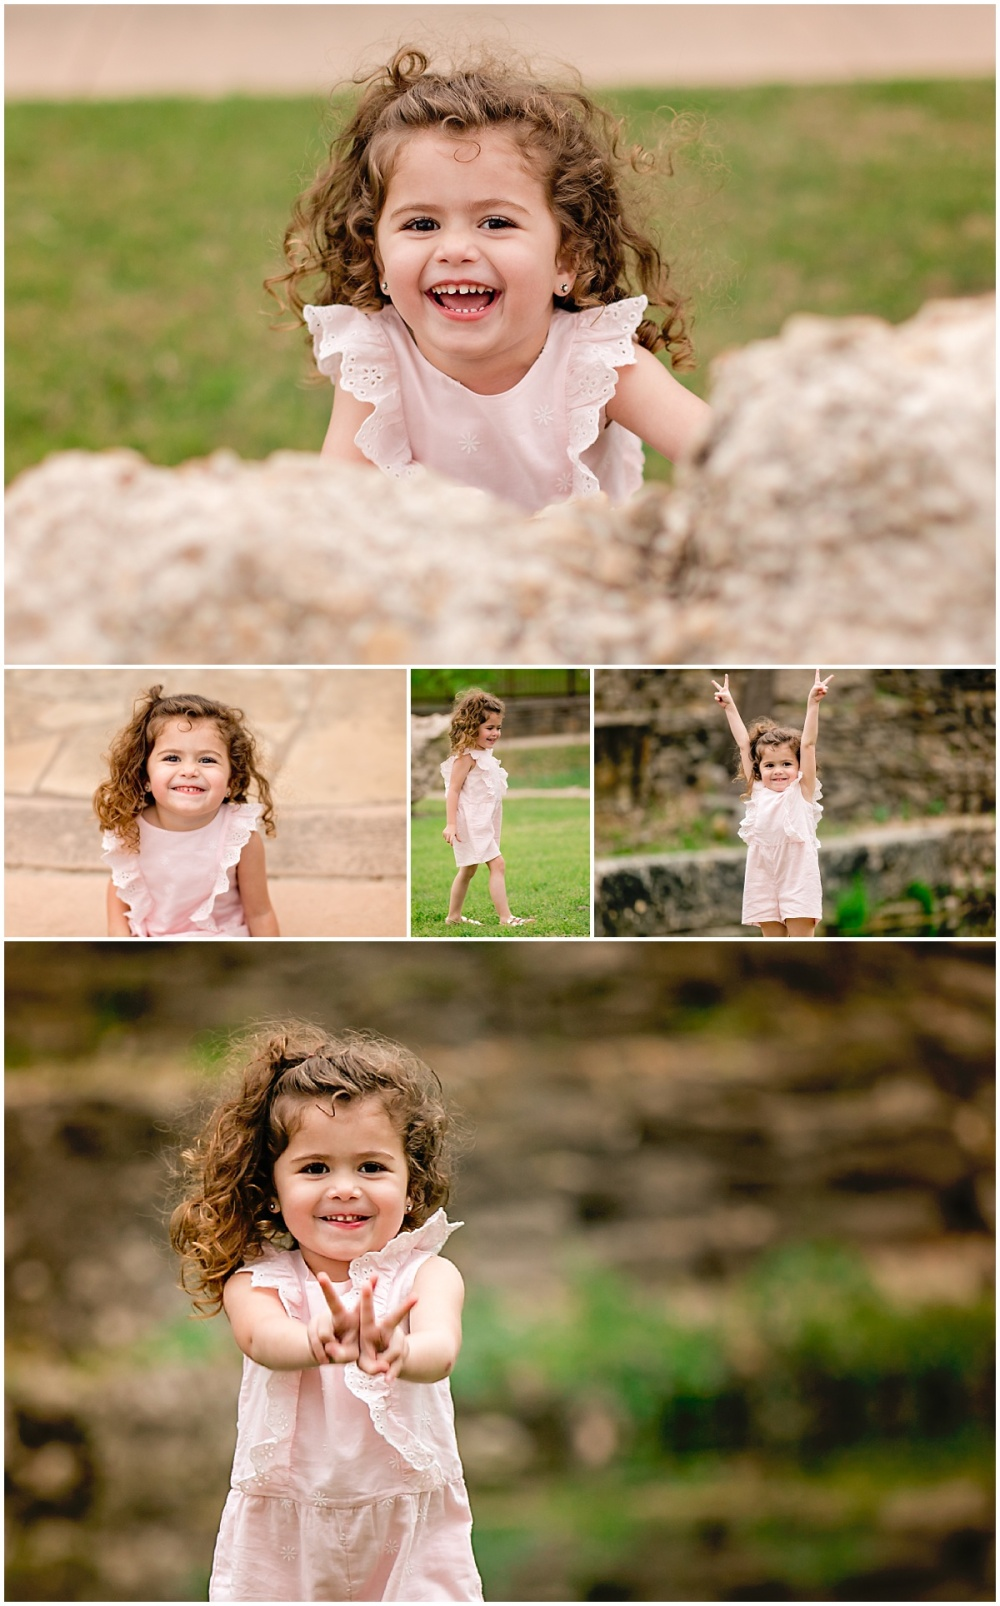 Family-Children-Birthday-Portraits-San-Antonio-Hill-Country-Texas-Carly-Barton-Photography_0006.jpg